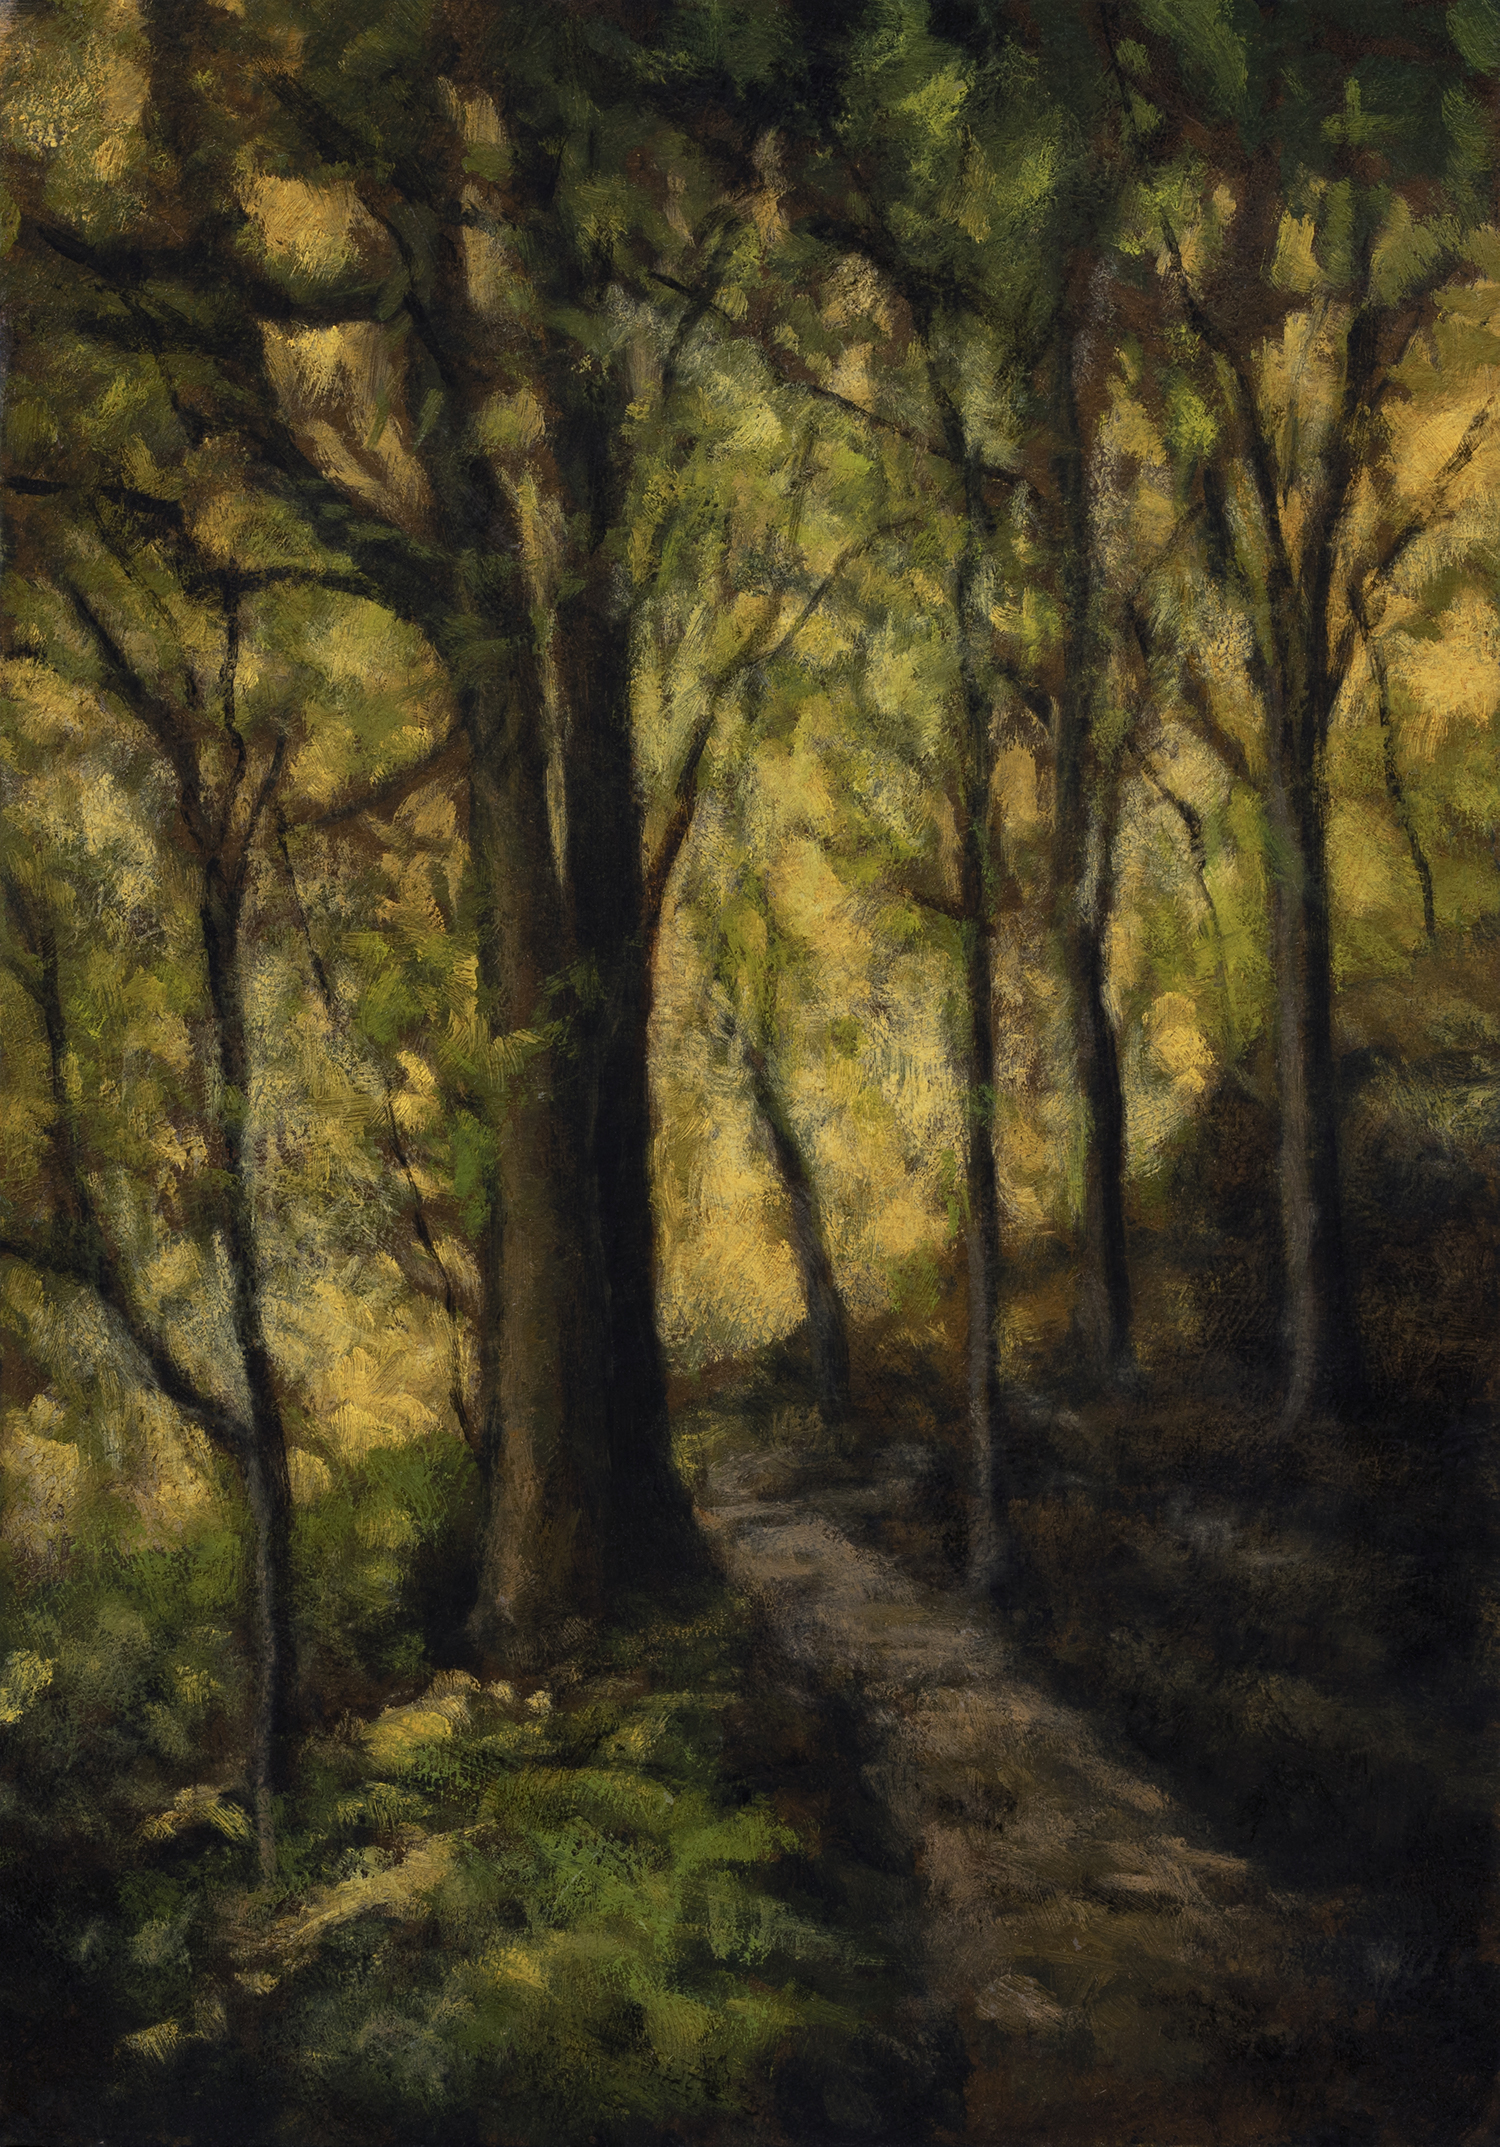 Forest Trail by M Francis McCarthy - 7x10 Oil on Wood Panel